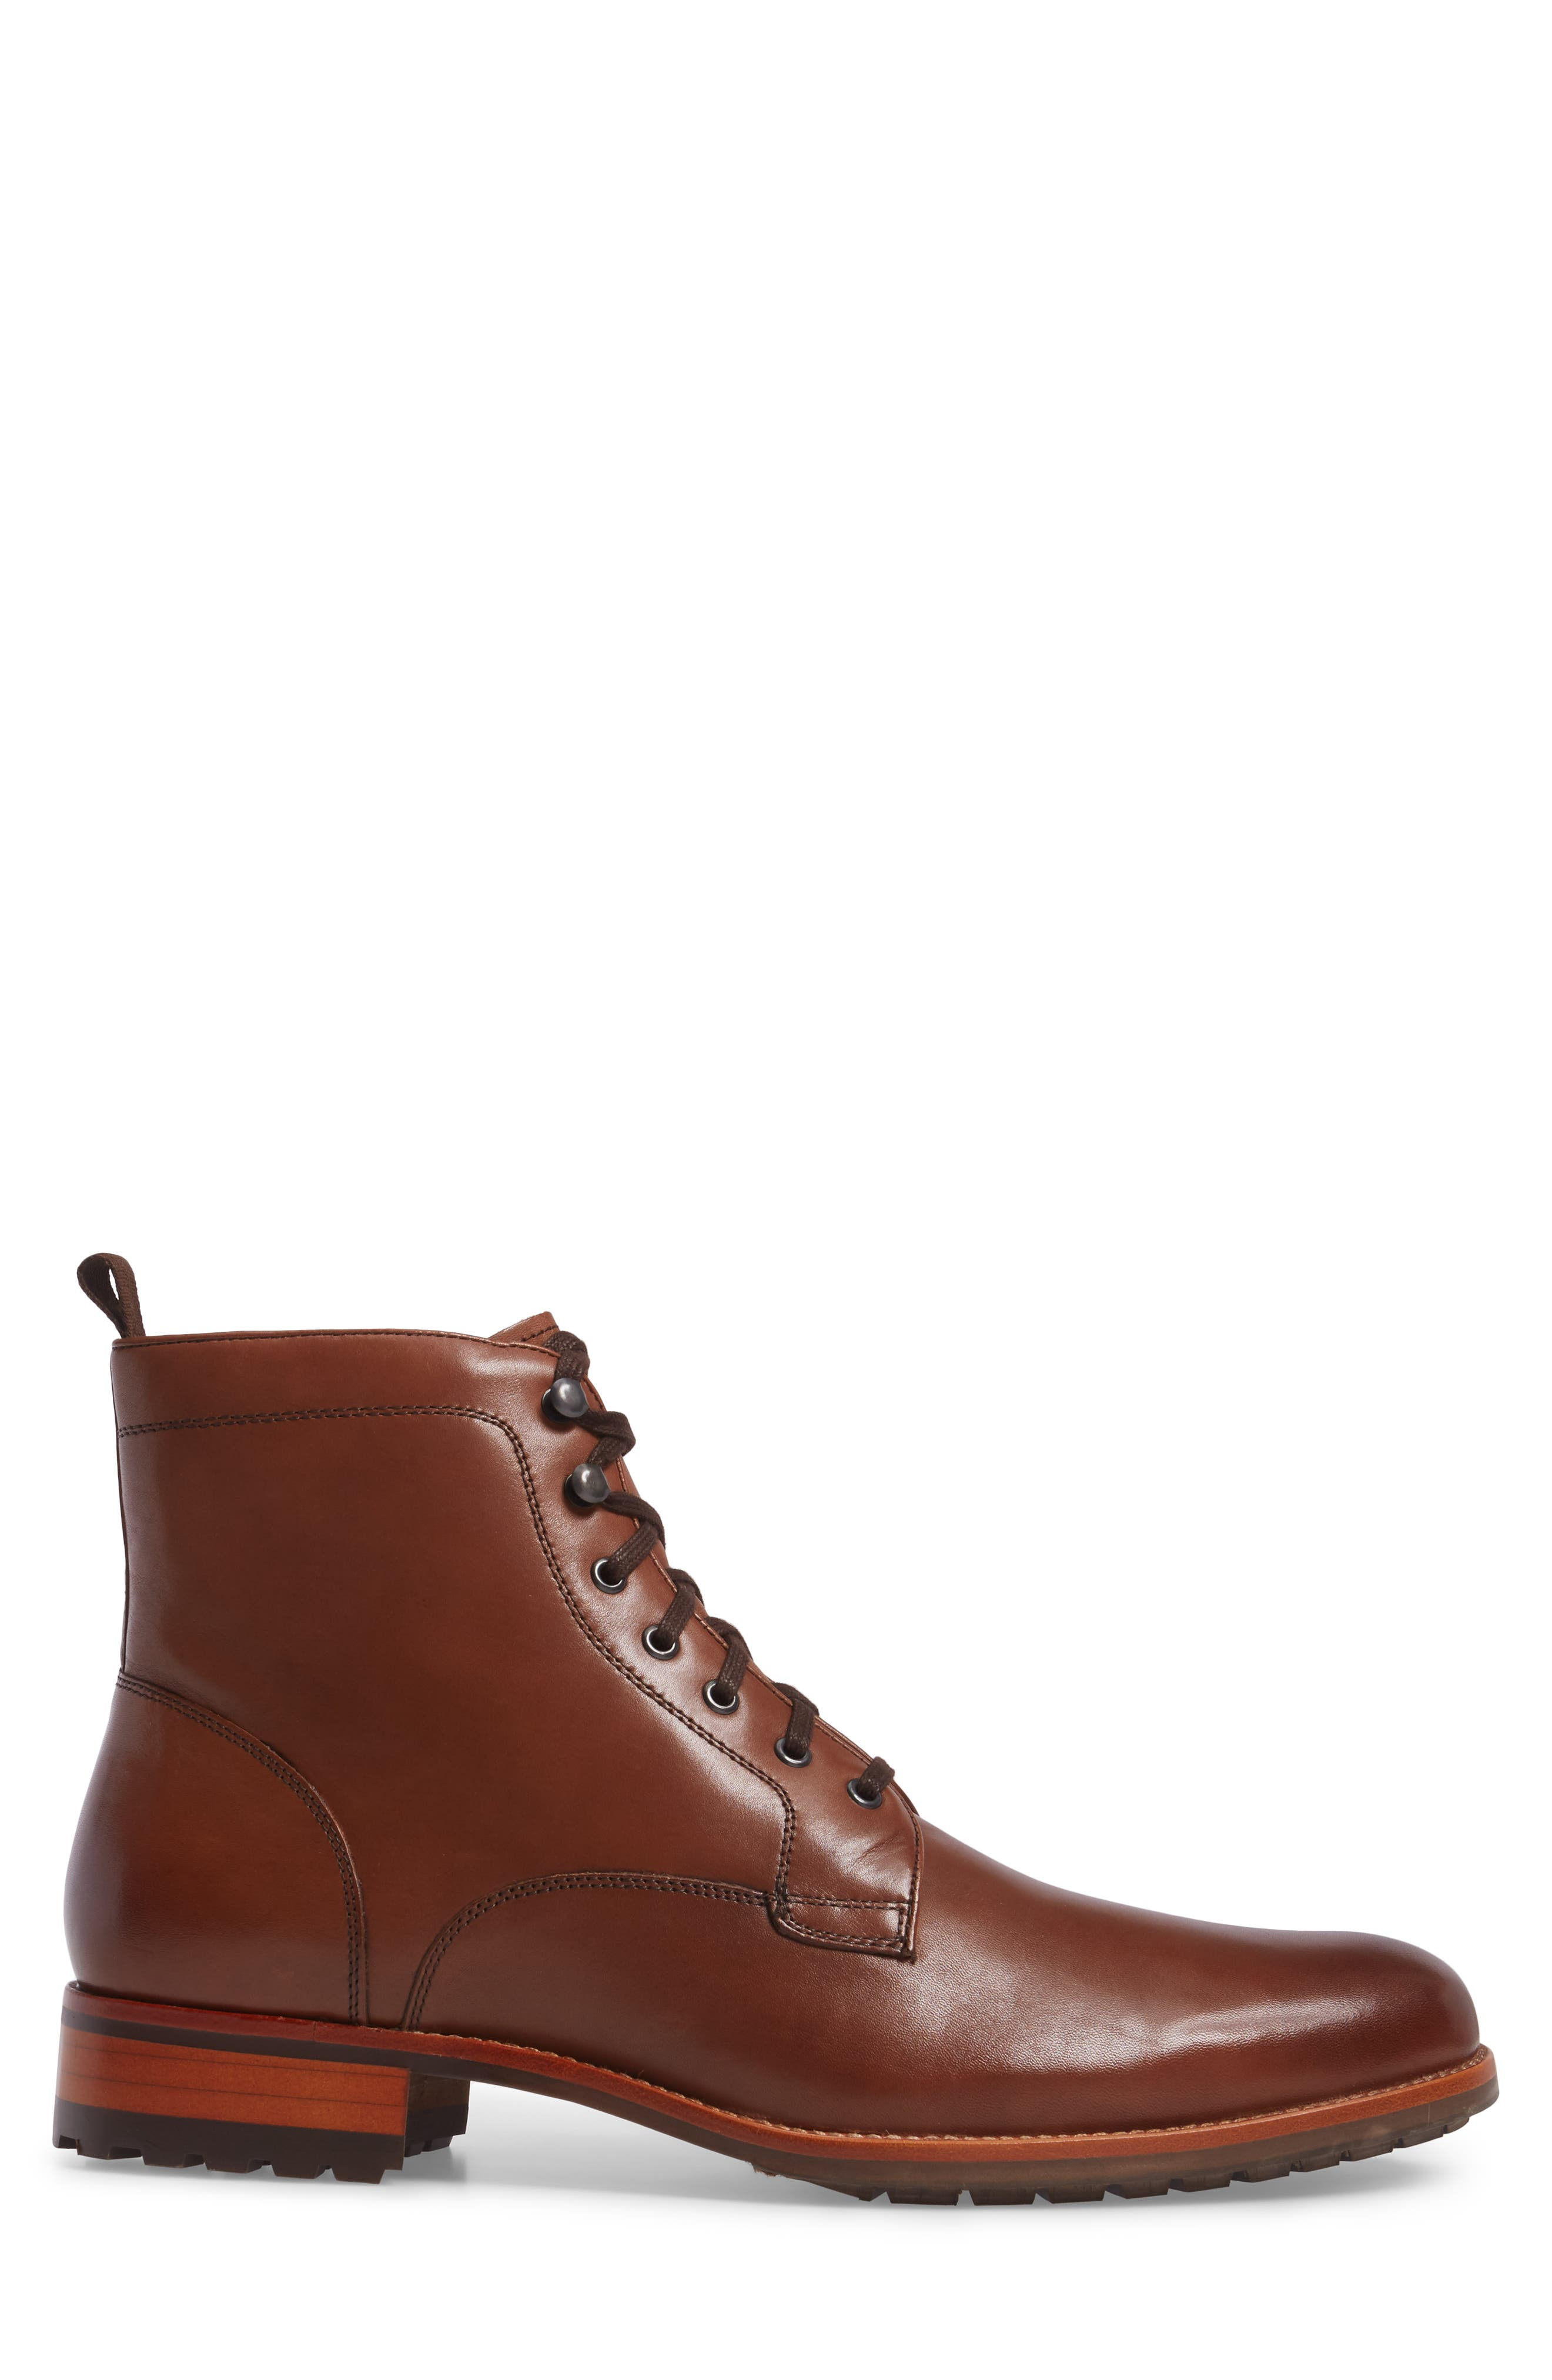 Axeford Plain Toe Boot,                             Alternate thumbnail 3, color,                             Luggage Leather